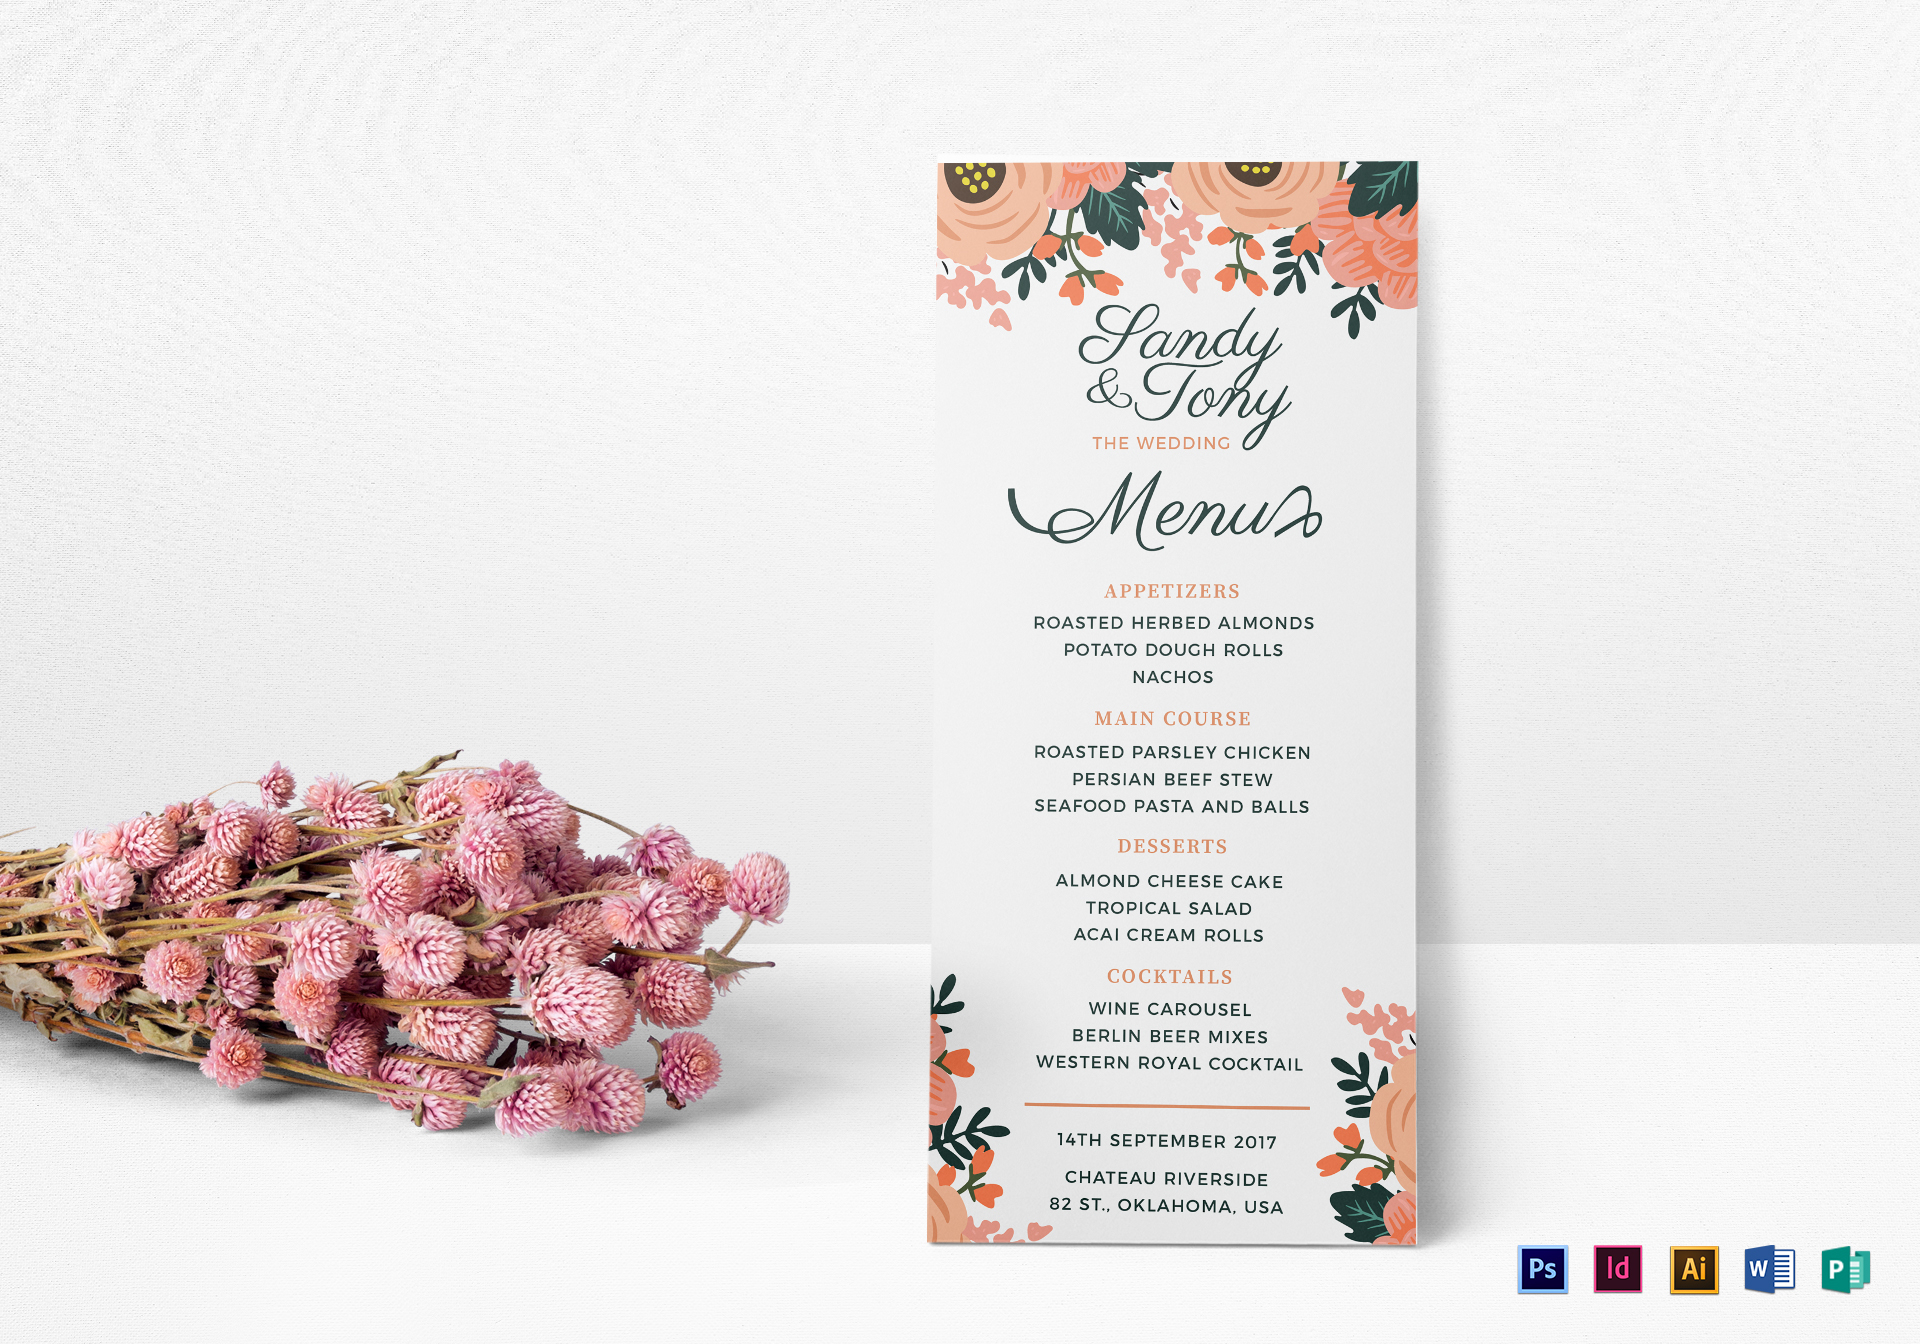 Wedding Menu Design Template in PSD Word Publisher Illustrator